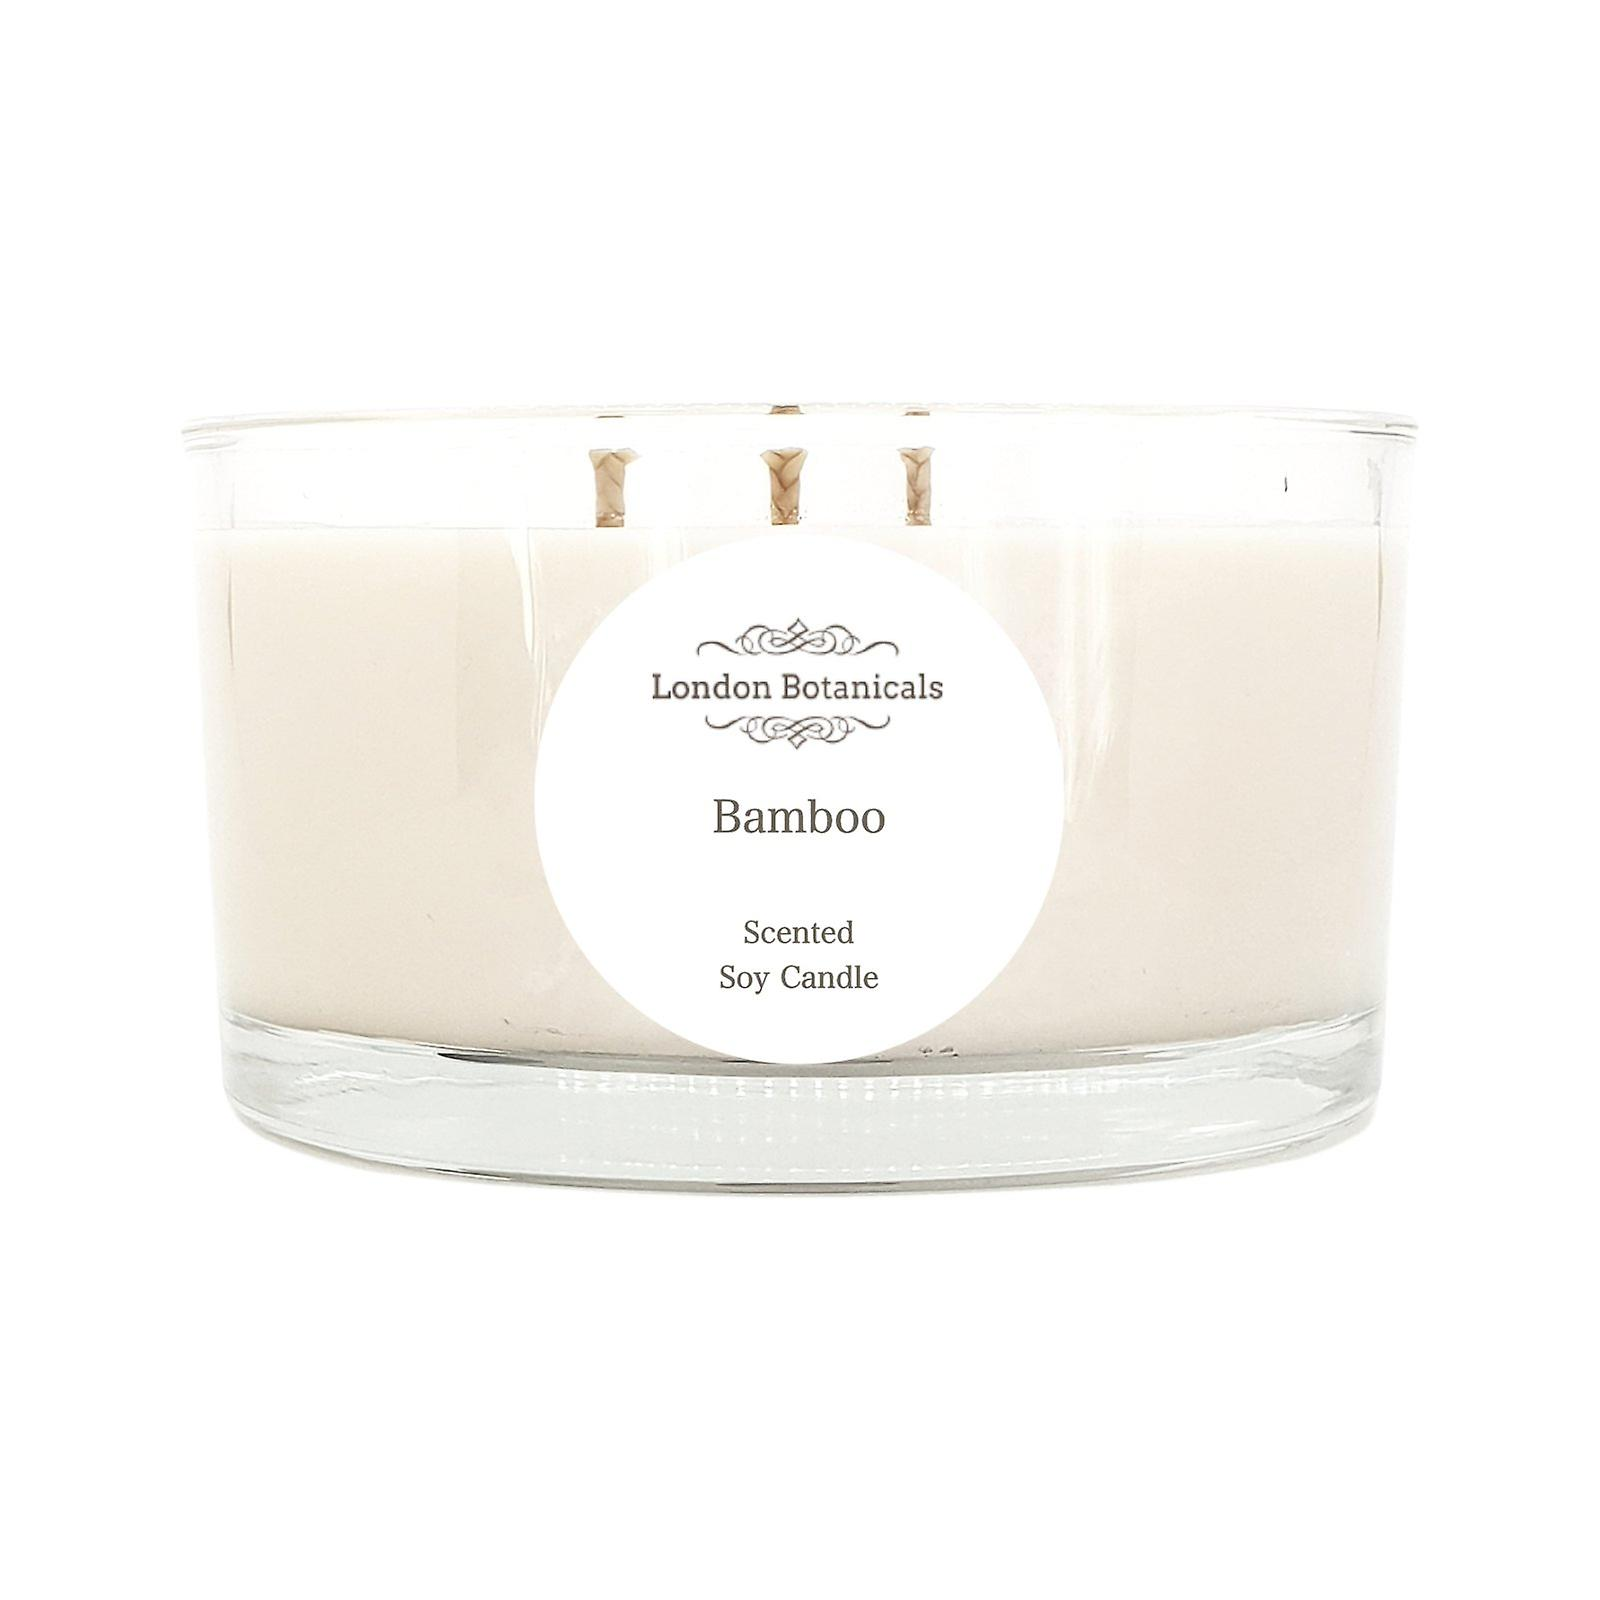 Bamboo 400g highly scented 100% soy candle